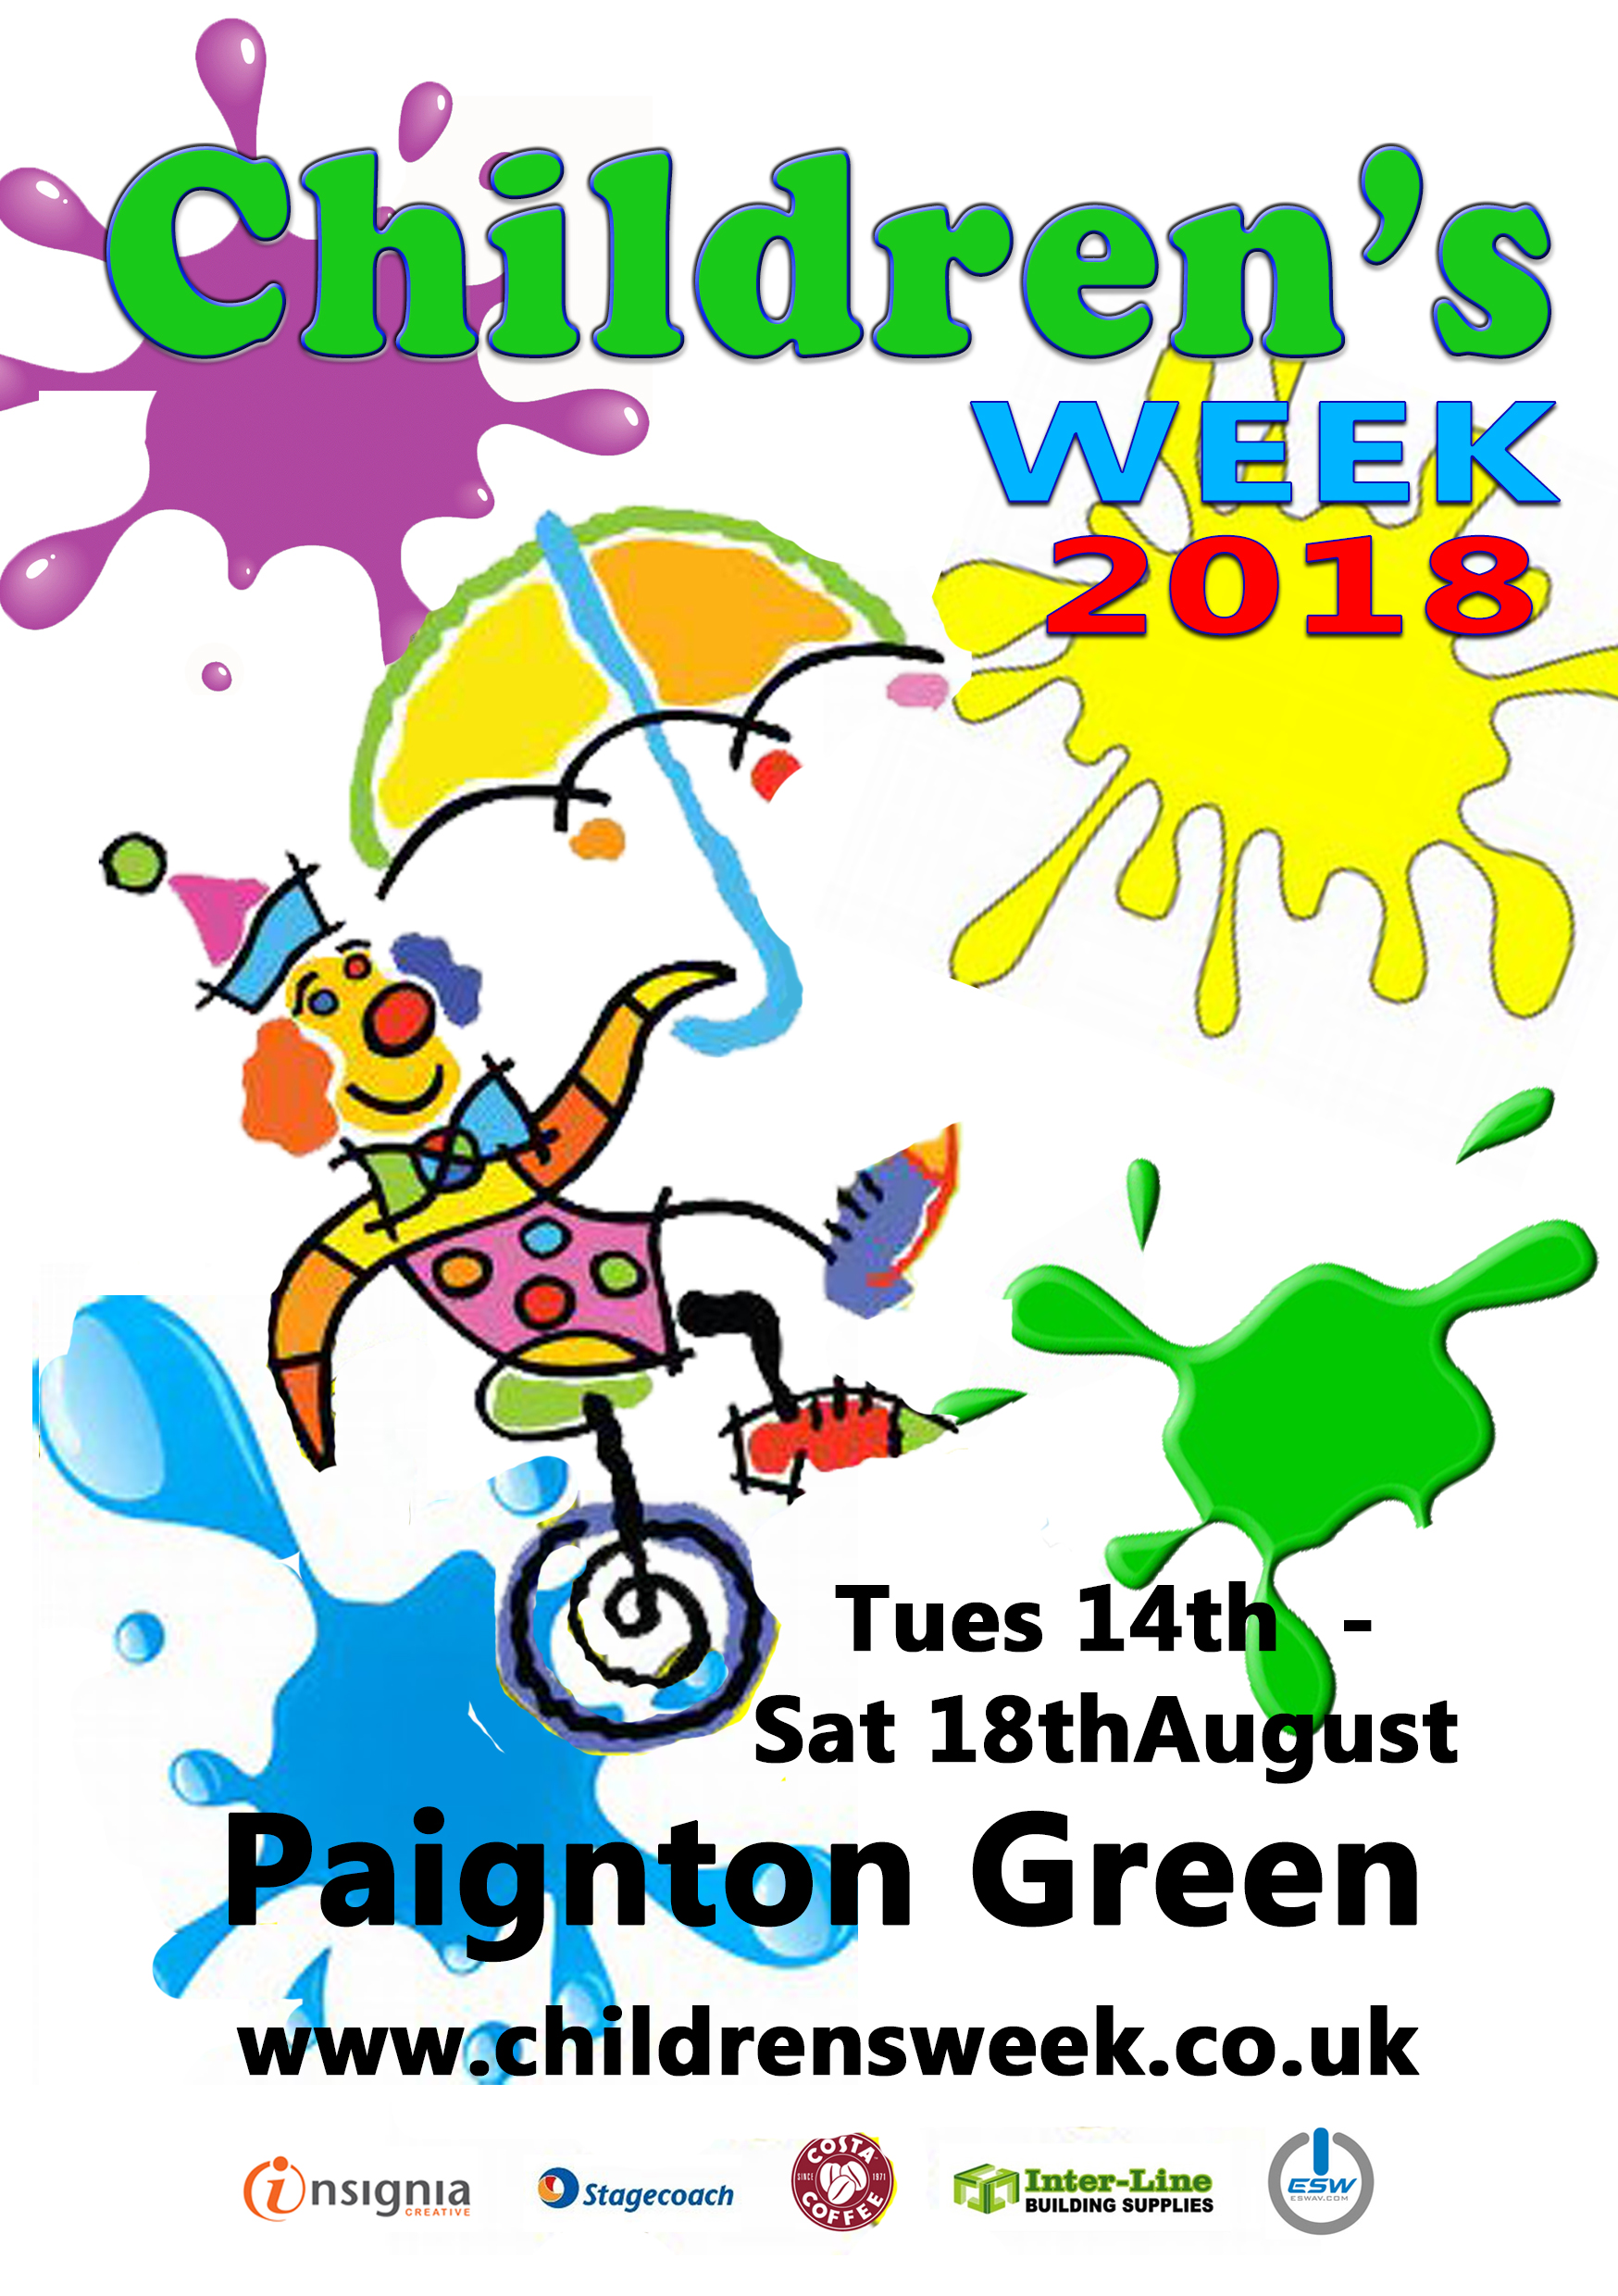 Paignton\'s Children\'s Week 2018 - Whats On South West